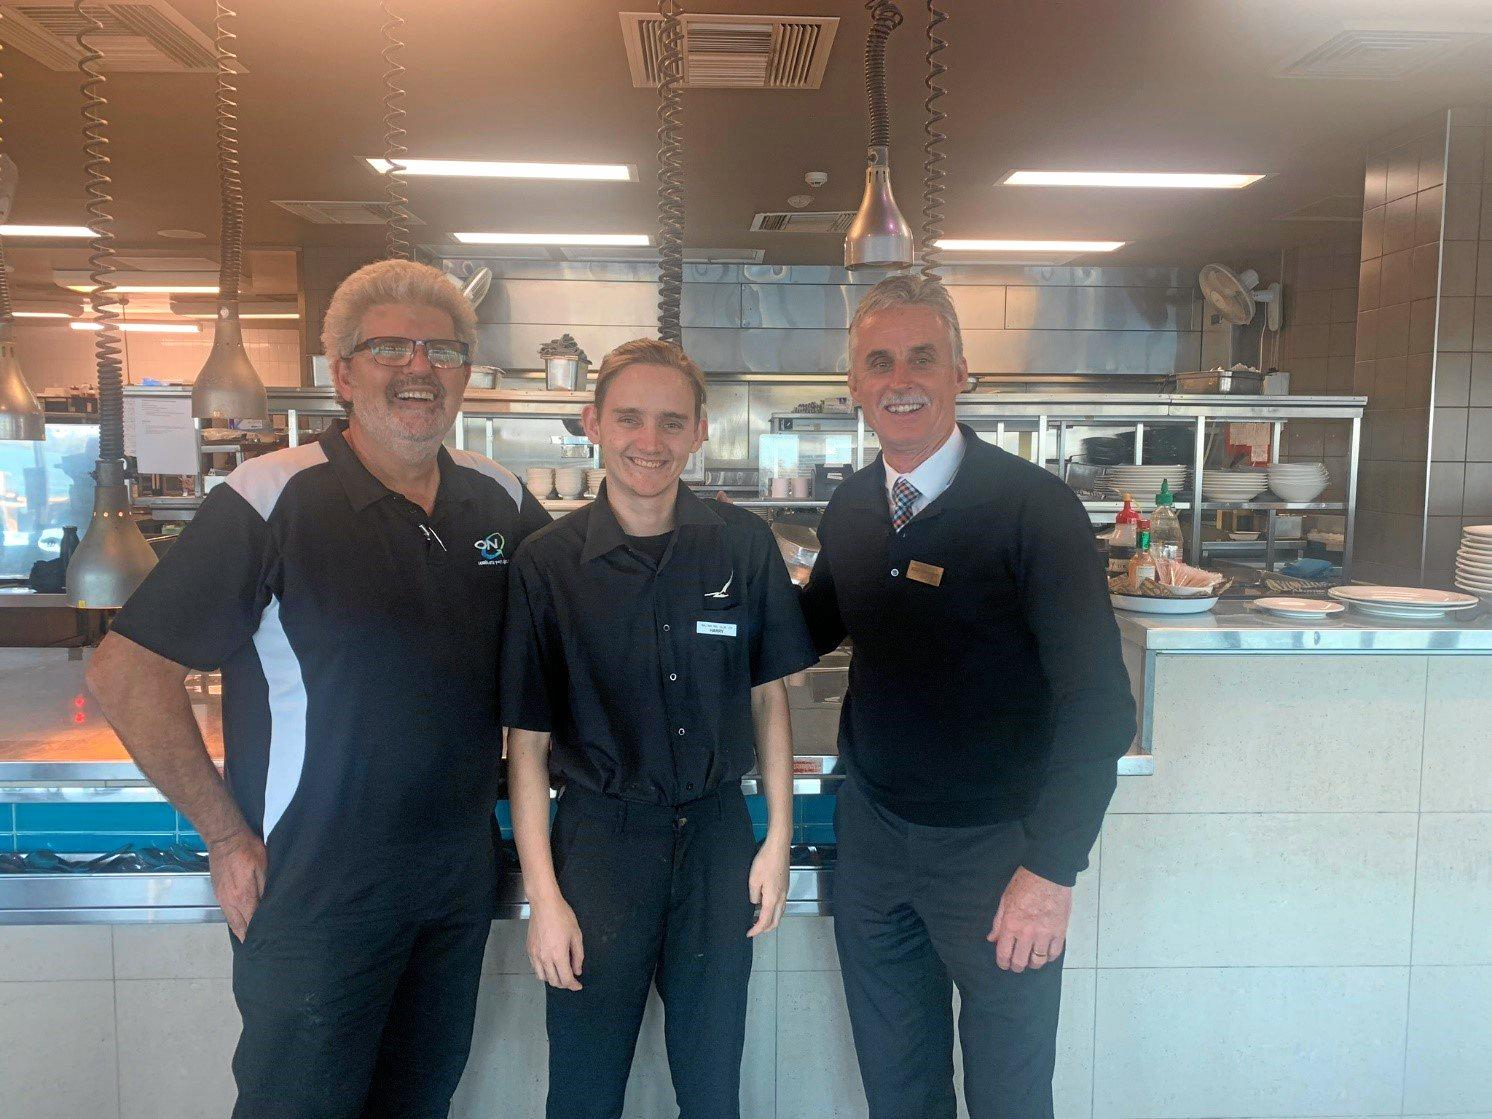 HARDWORK PAYS OFF: Harry is enjoying his new role at Ballina RSL. (L-R) Petar Ilic (ON-Q), Harry Eggins and Bill Coultier, CEO, Ballina RSL.